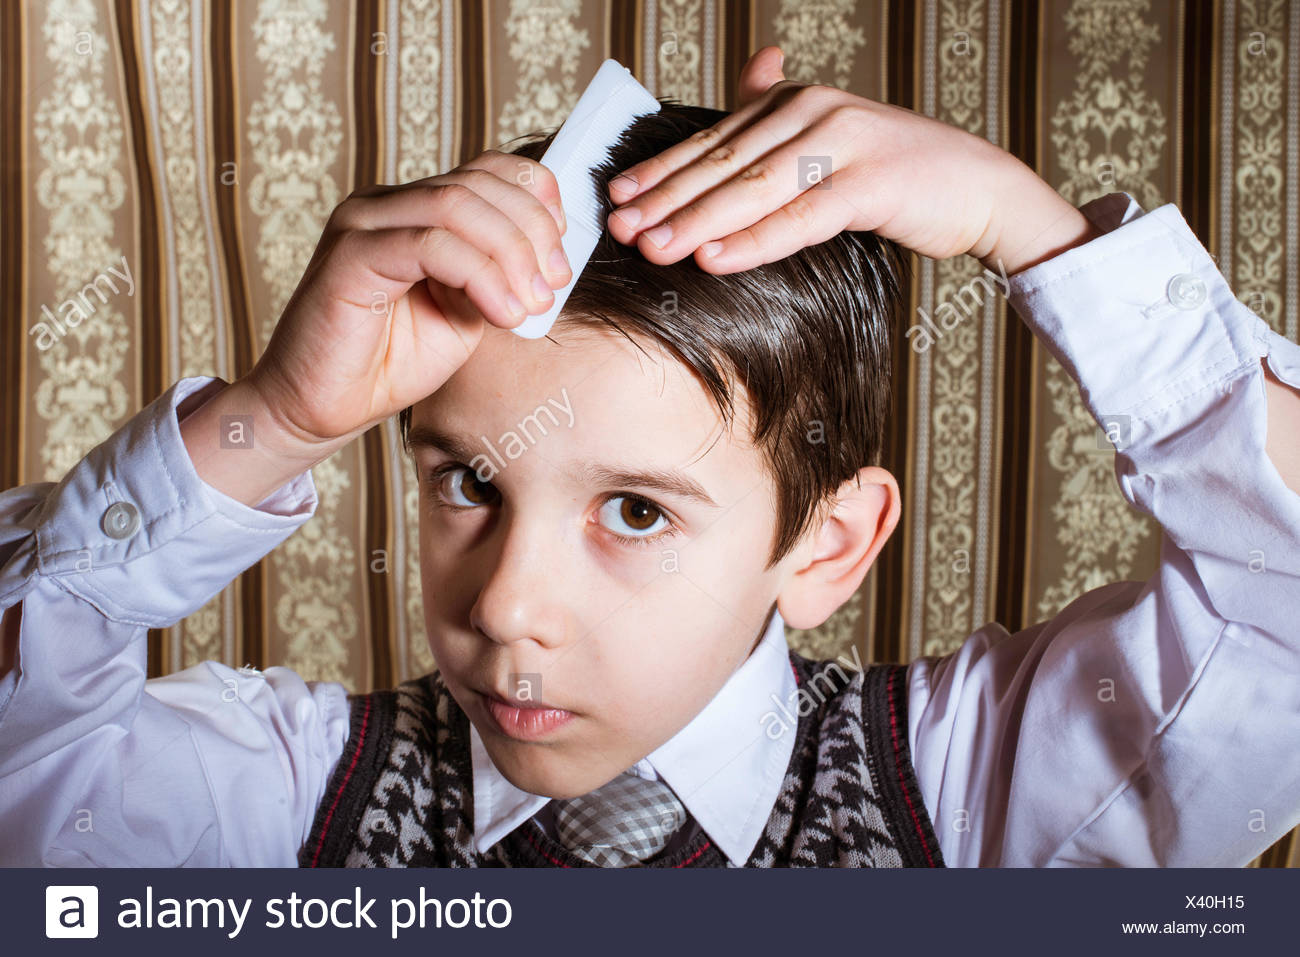 Child vintage clothes decided his hair. Close up shot - Stock Image